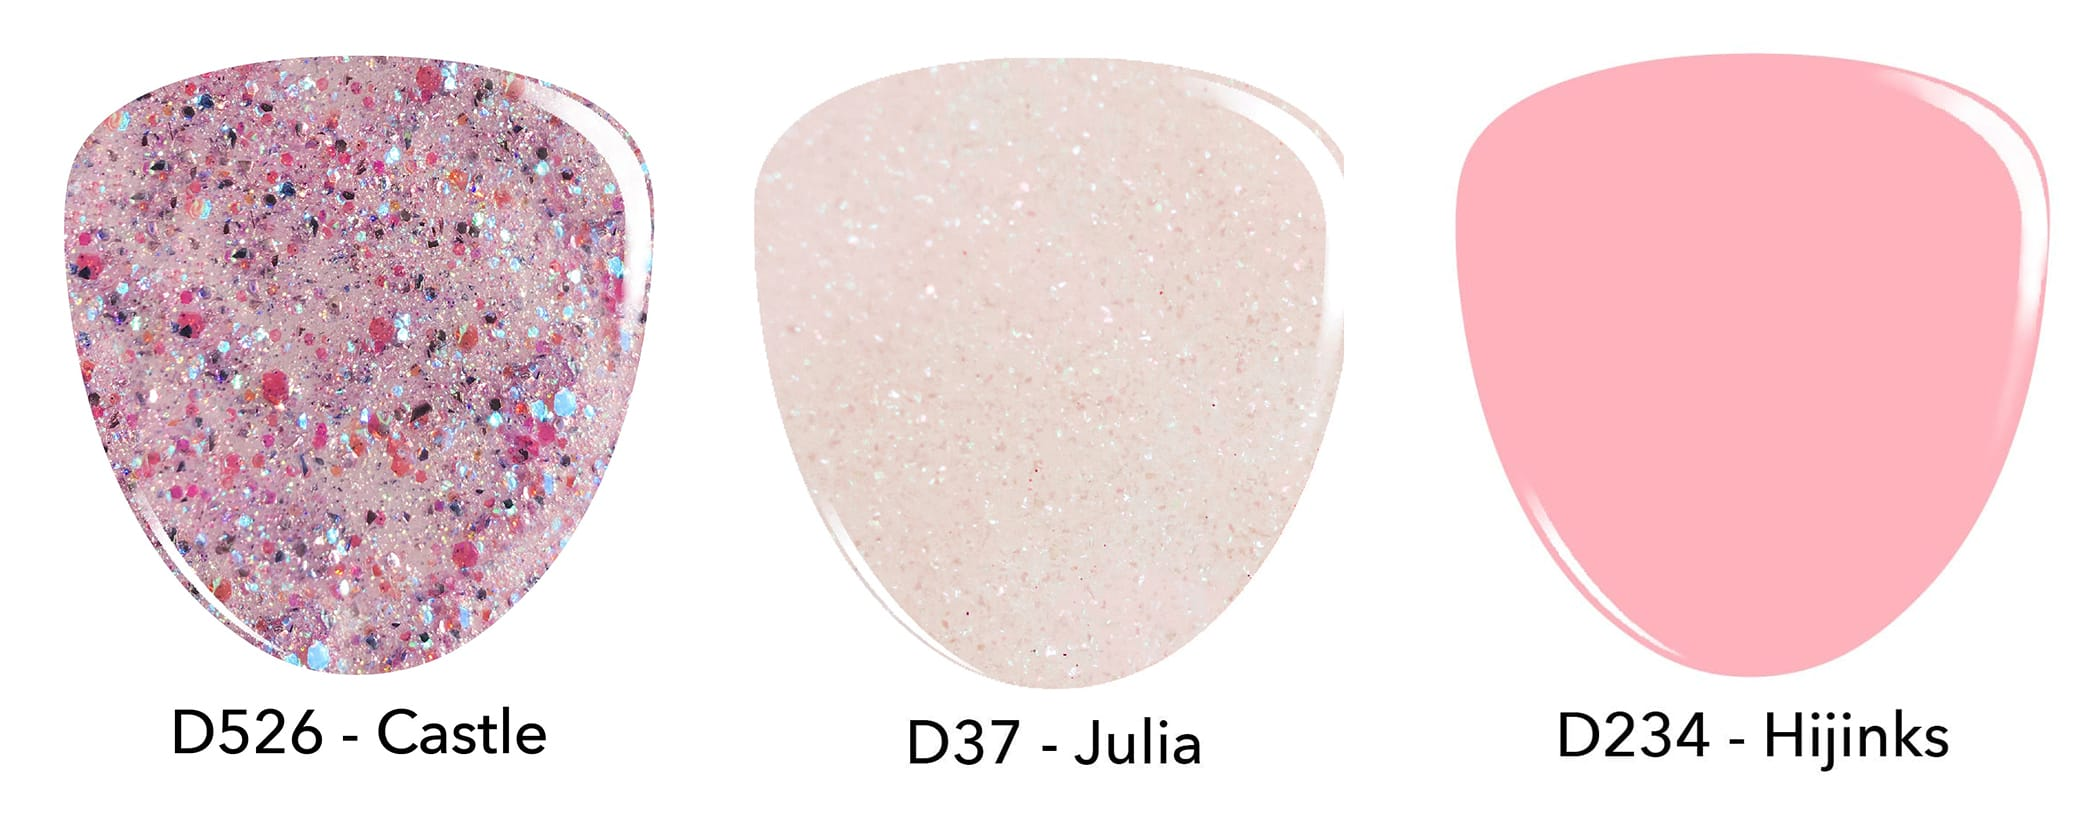 Swatches of purple pink glitter dip powder, sheer pink dip powder and baby pink dip powder.